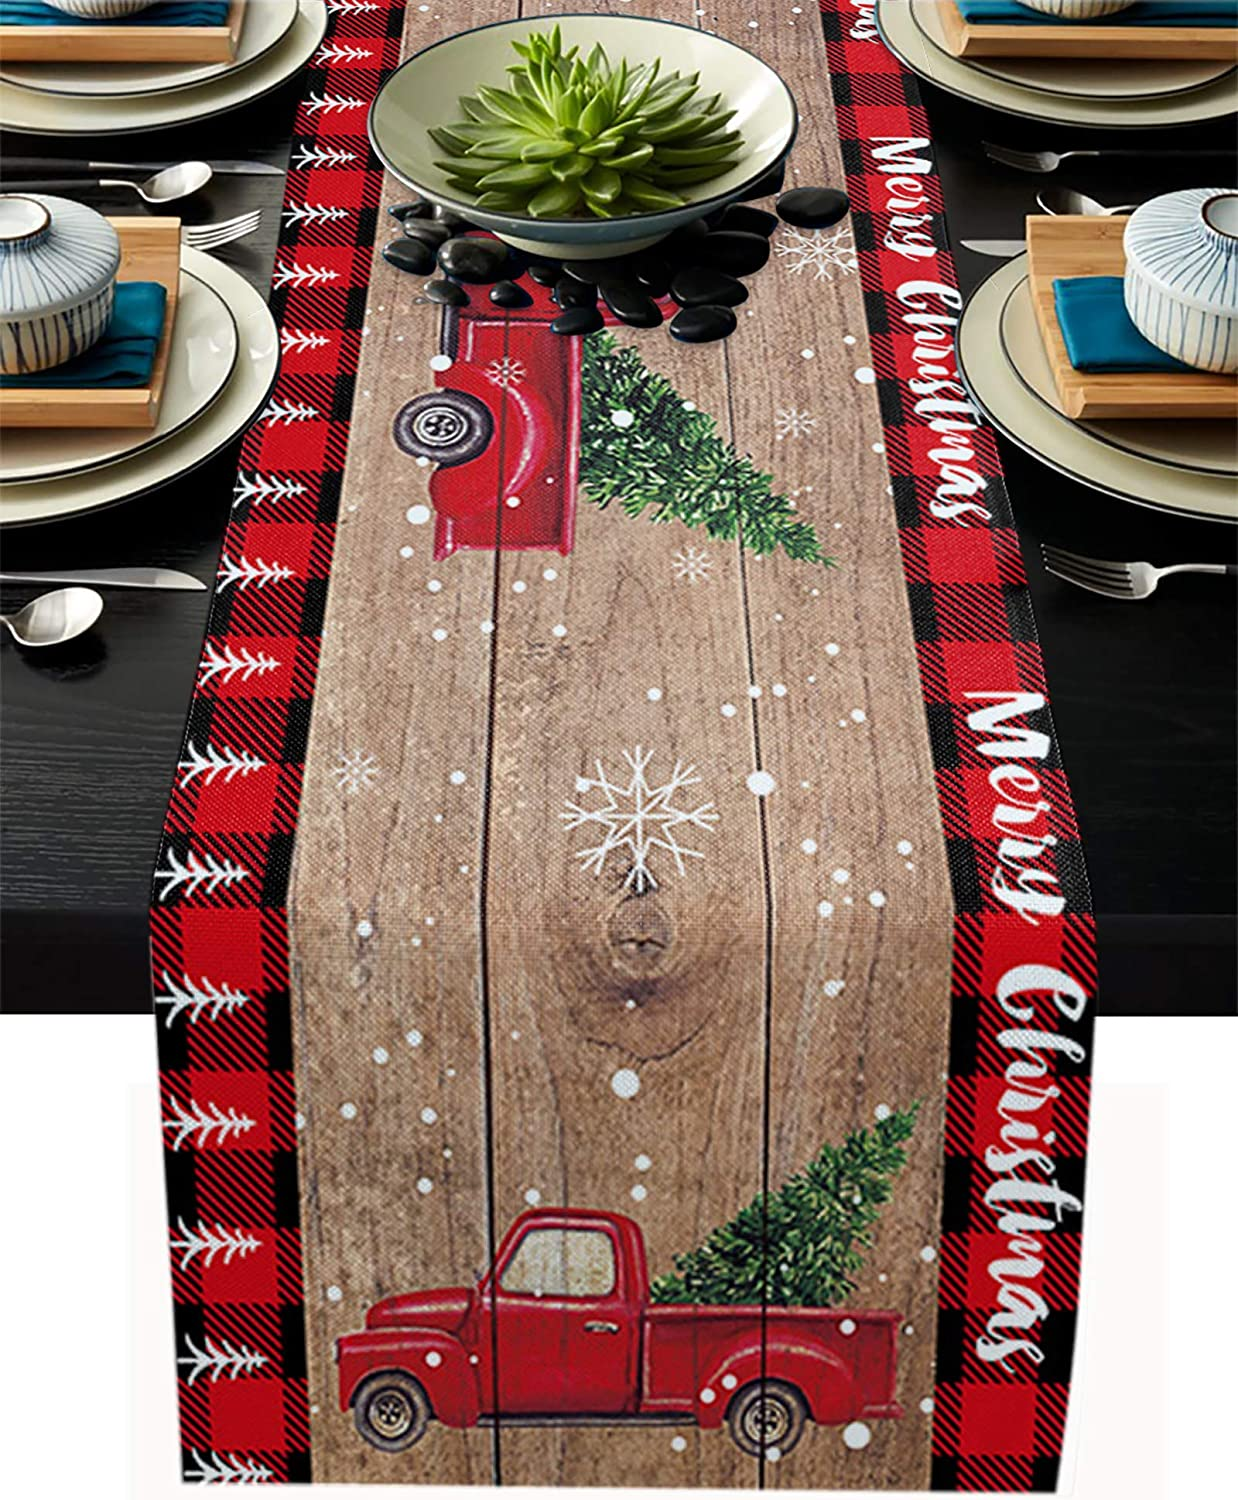 Cotton Linen Table Runner, Christmas Truck with Xmas Trees Red Black Buffalo Plaid Dresser Scarves Tablecloth for Christmas Holidays Decorations Dinner Parties,Non-Slip 13x70inch